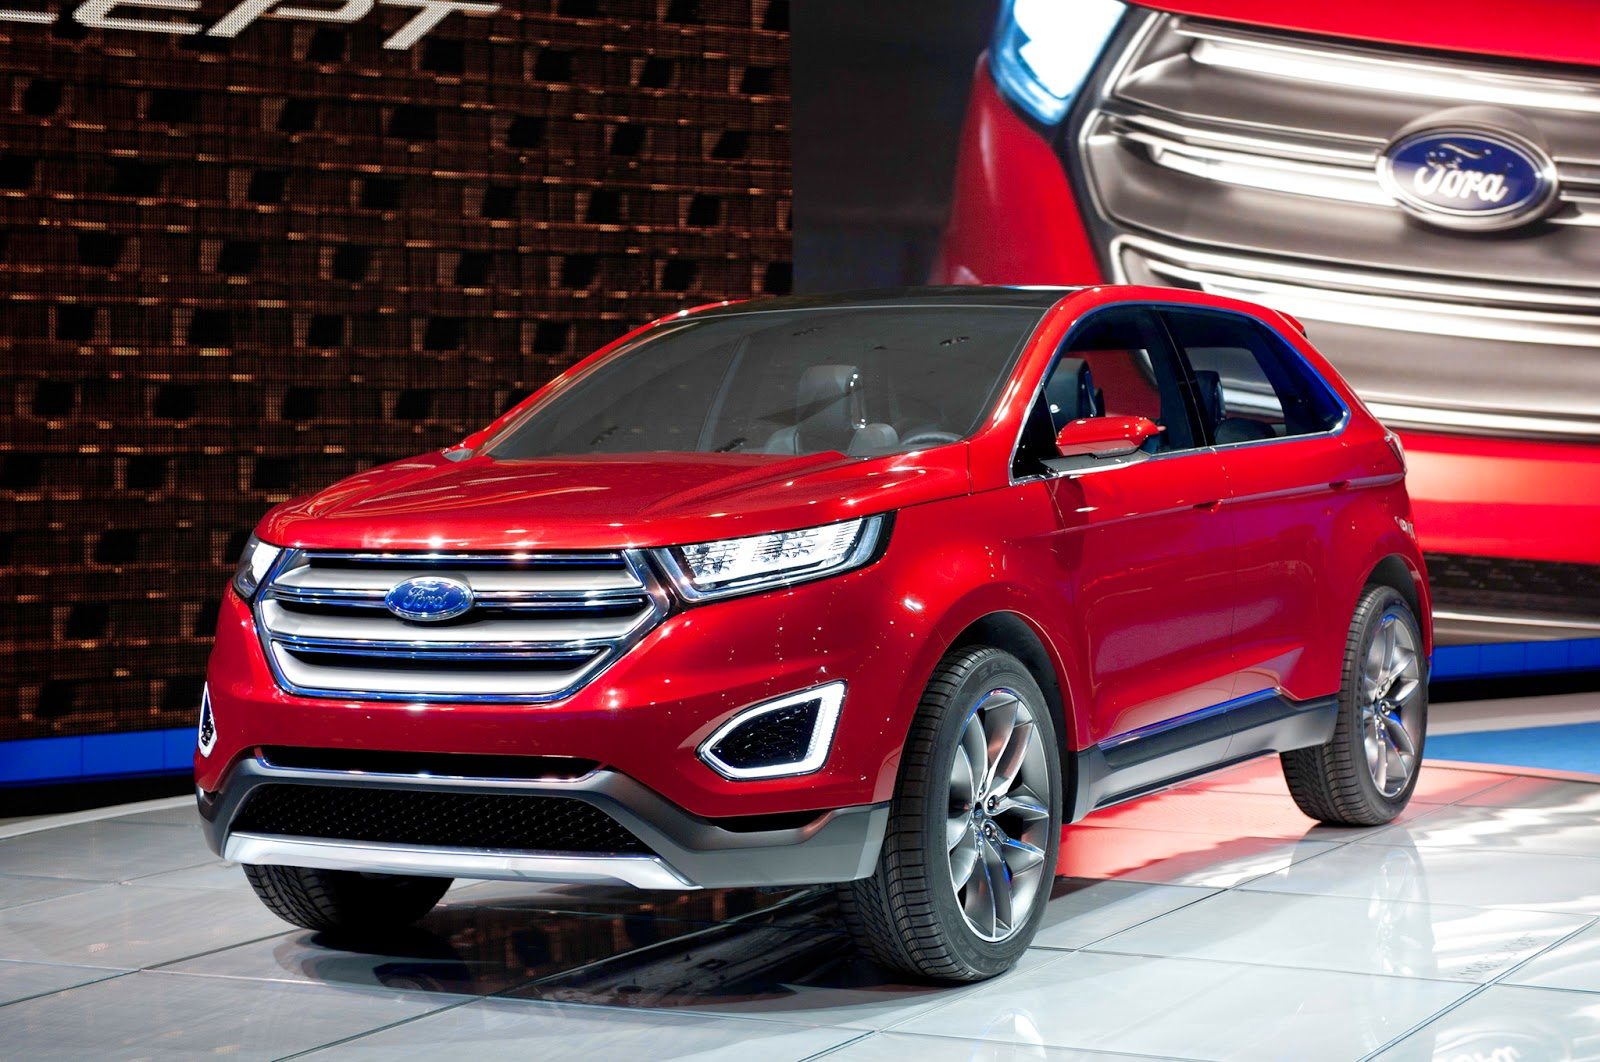 2015 ford edge redesign release date price specs and interior. Black Bedroom Furniture Sets. Home Design Ideas